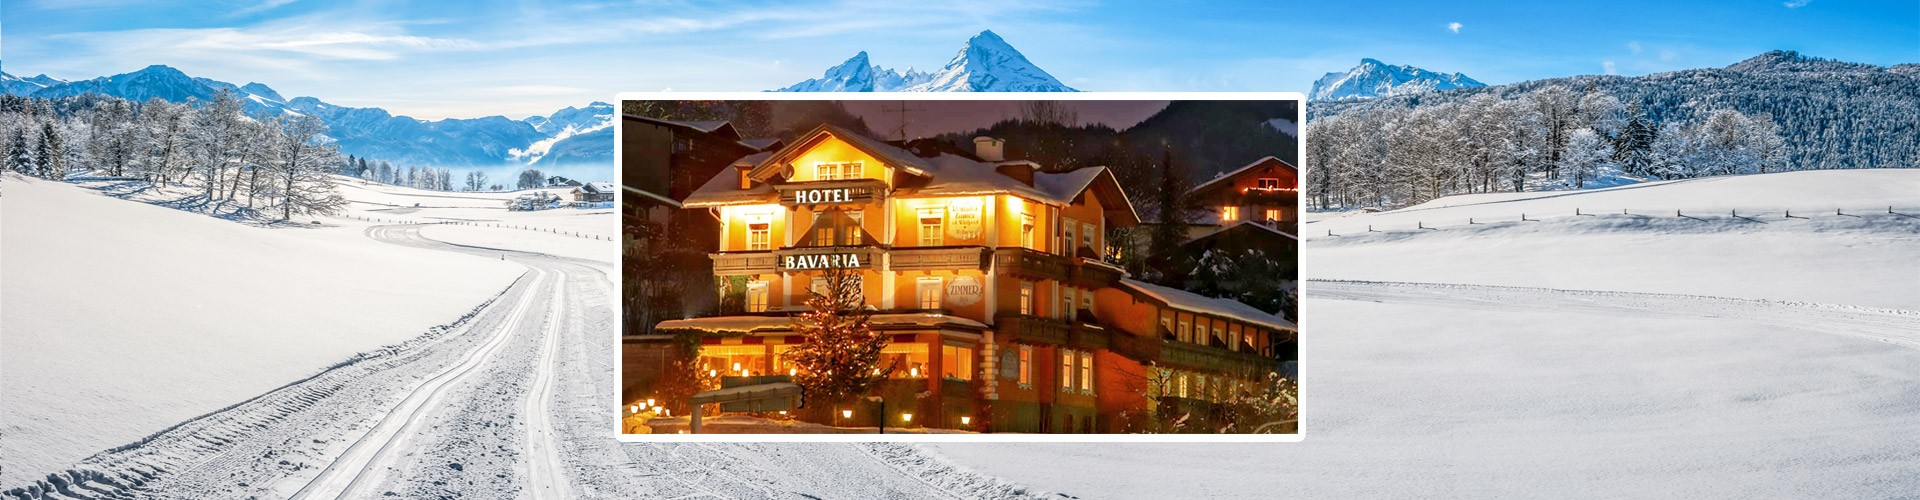 Hotel Bavaria im Winter